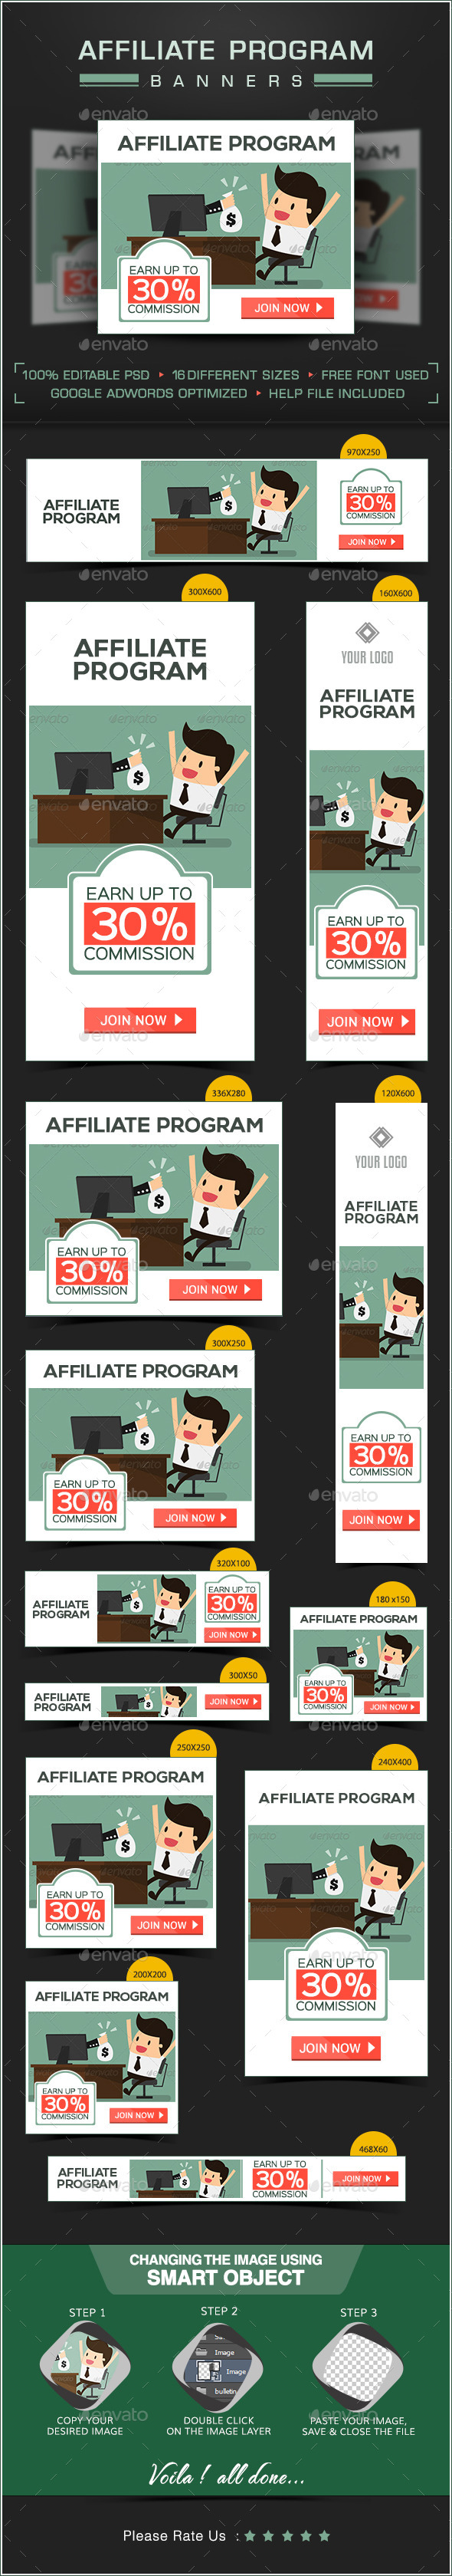 Web Banner Design for Affiliate Program